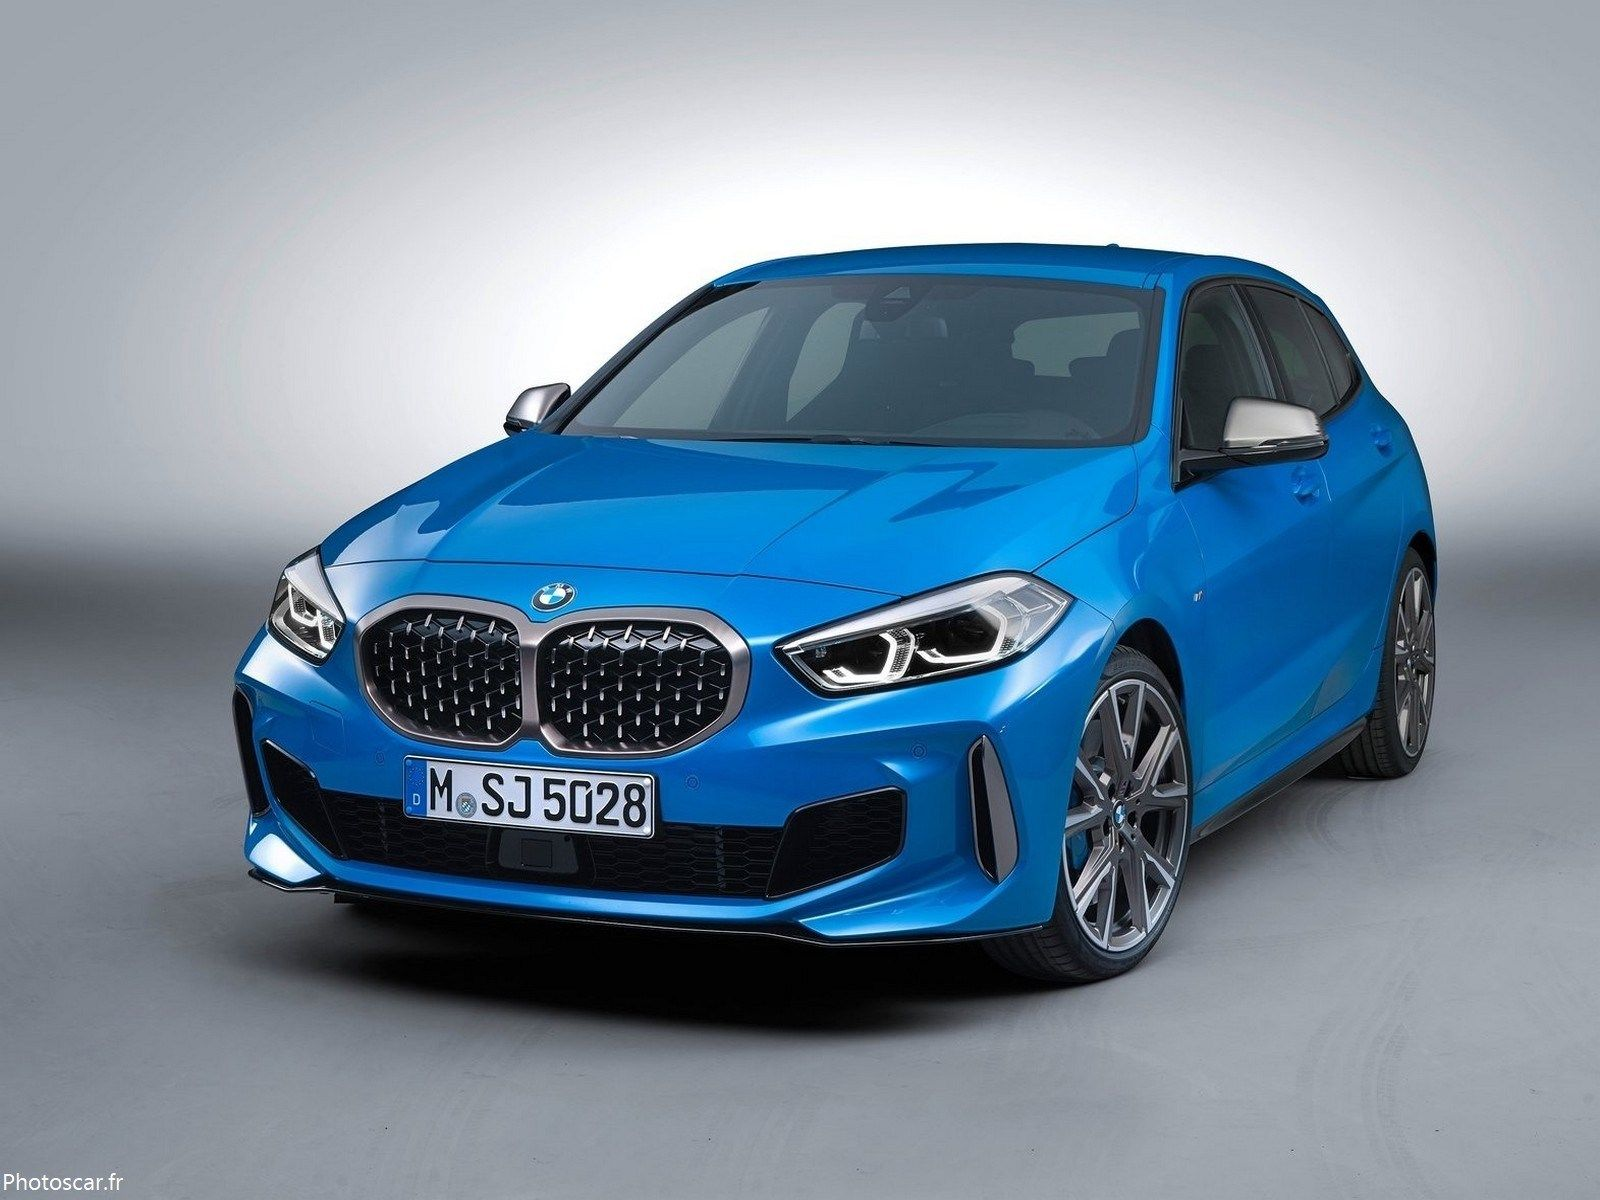 Bmw M135i 2020 The New Trendy Bmw Sedan Looks Great Bmw 1